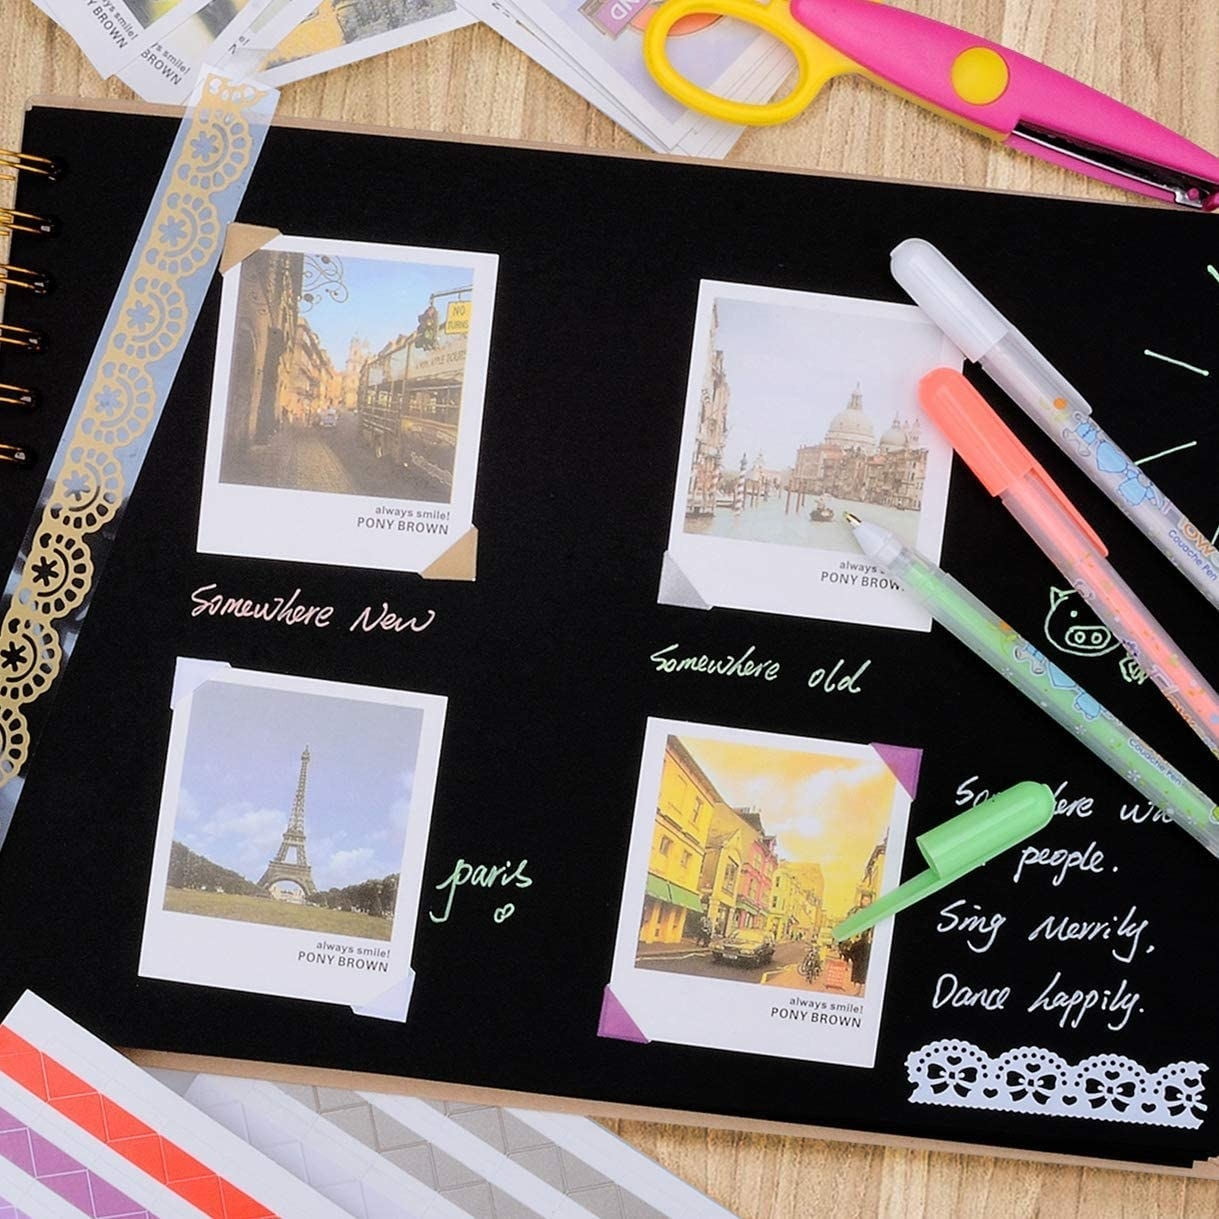 An open scrapbook with four photos pasted to the paper